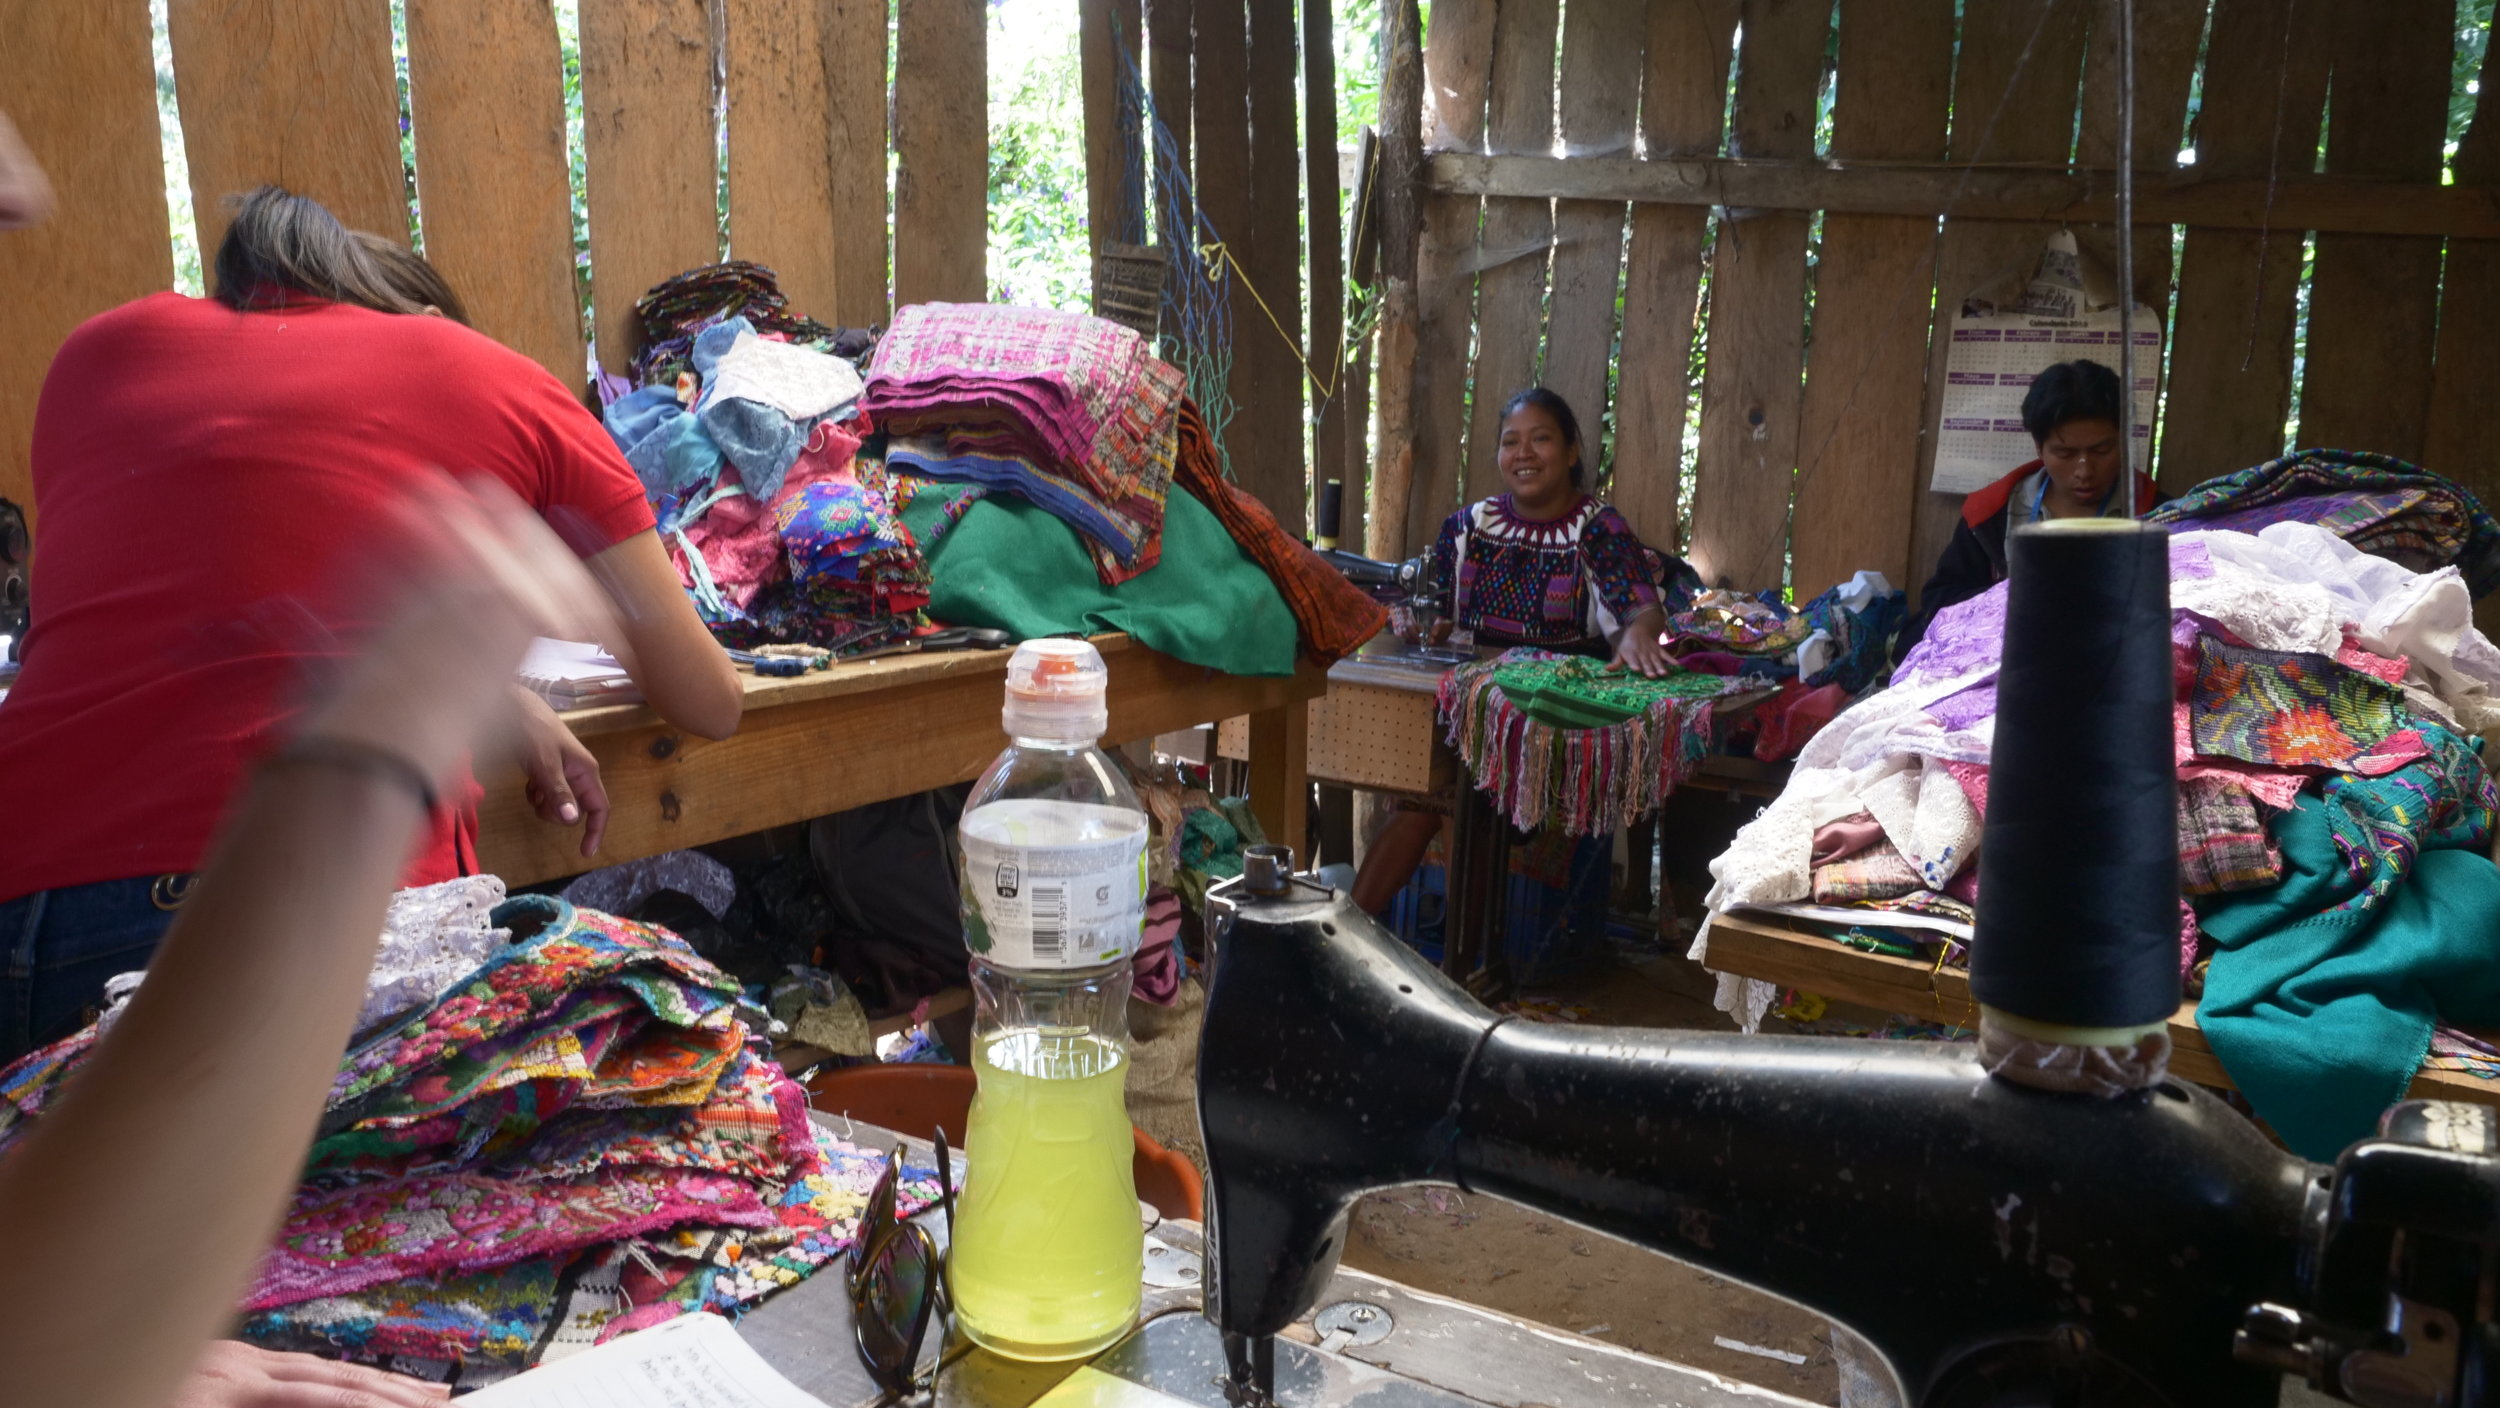 A small tailoring business that receives microloans from a nonprofit.